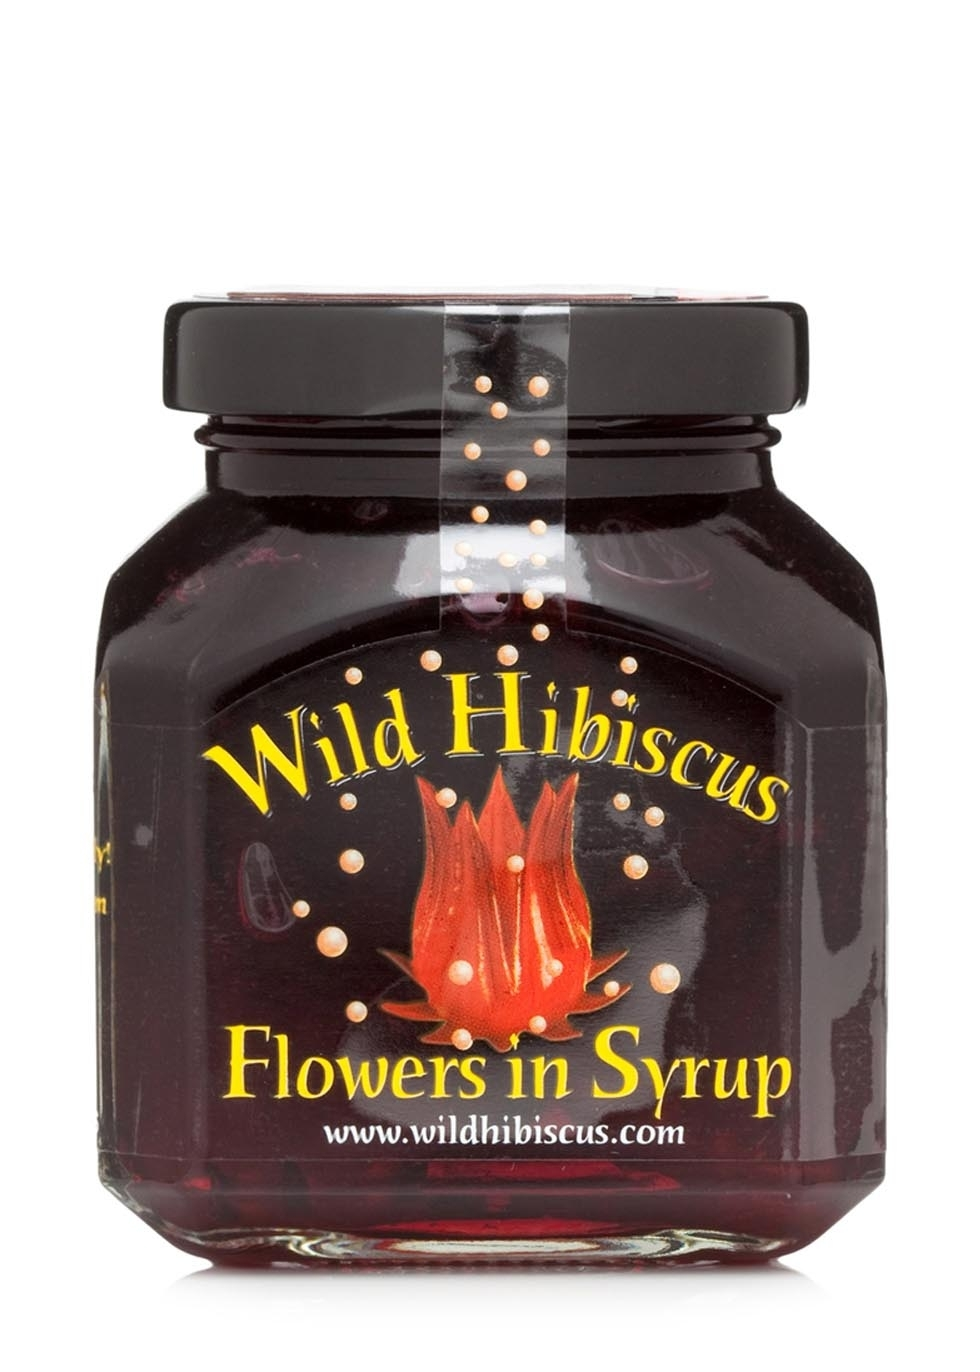 Wild Hibiscus Hibiscus Flowers In Syrup 250g Harvey Nichols